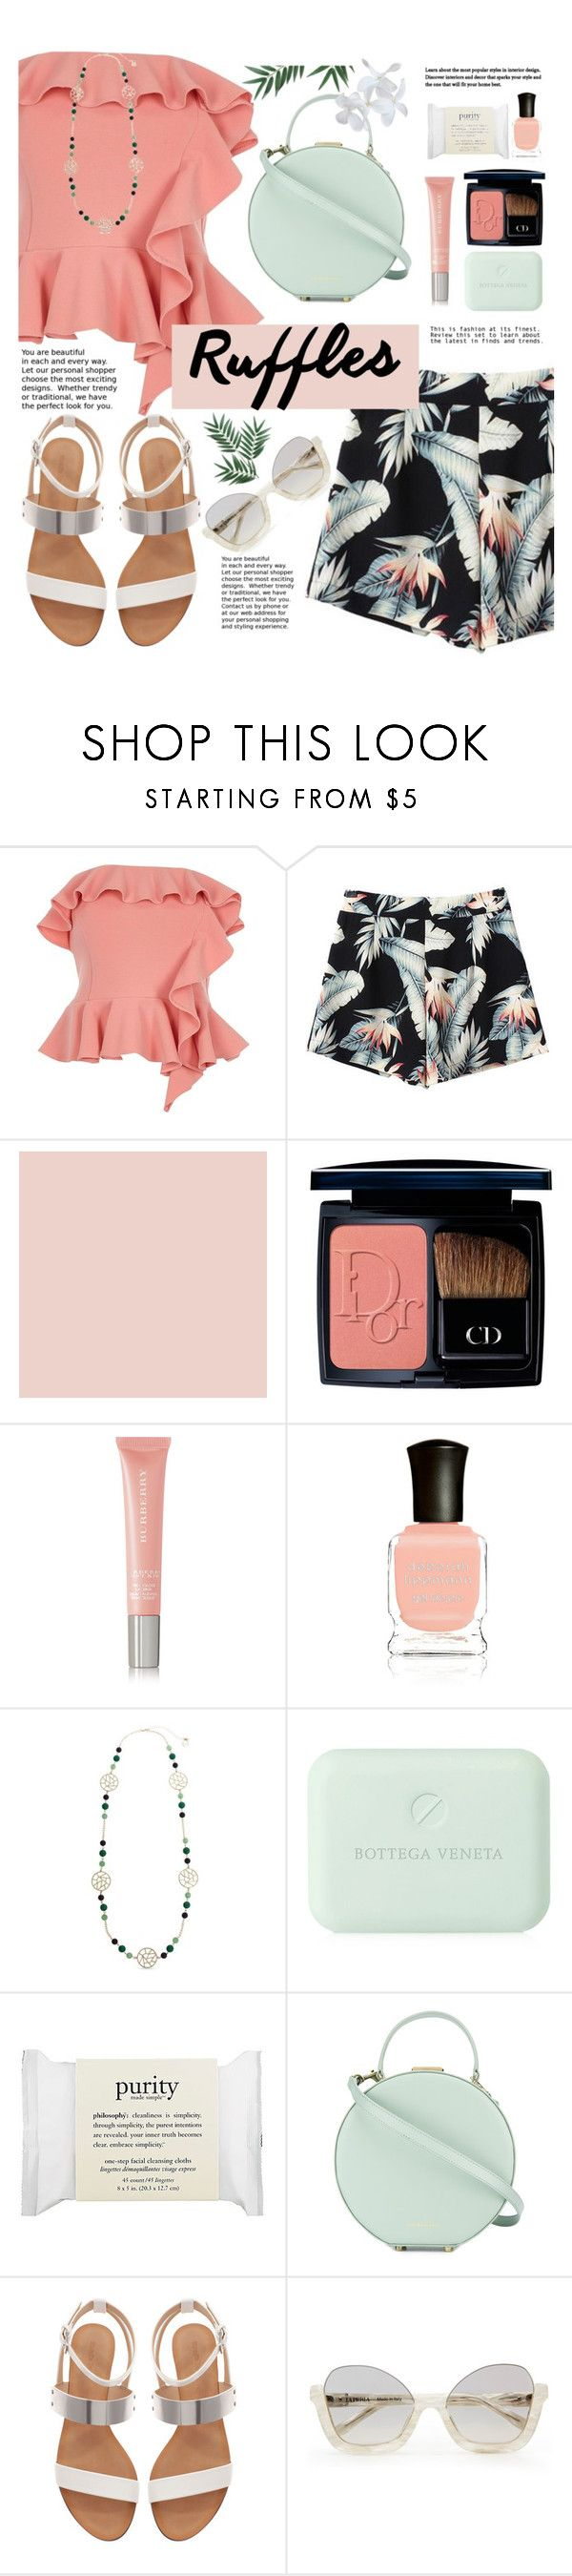 """peach and green ruffles"" by nineseventyseven ❤ liked on Polyvore featuring River Island, Christian Dior, Burberry, Deborah Lippmann, Erica Lyons, Bottega Veneta, philosophy, Tammy & Benjamin and Zara"